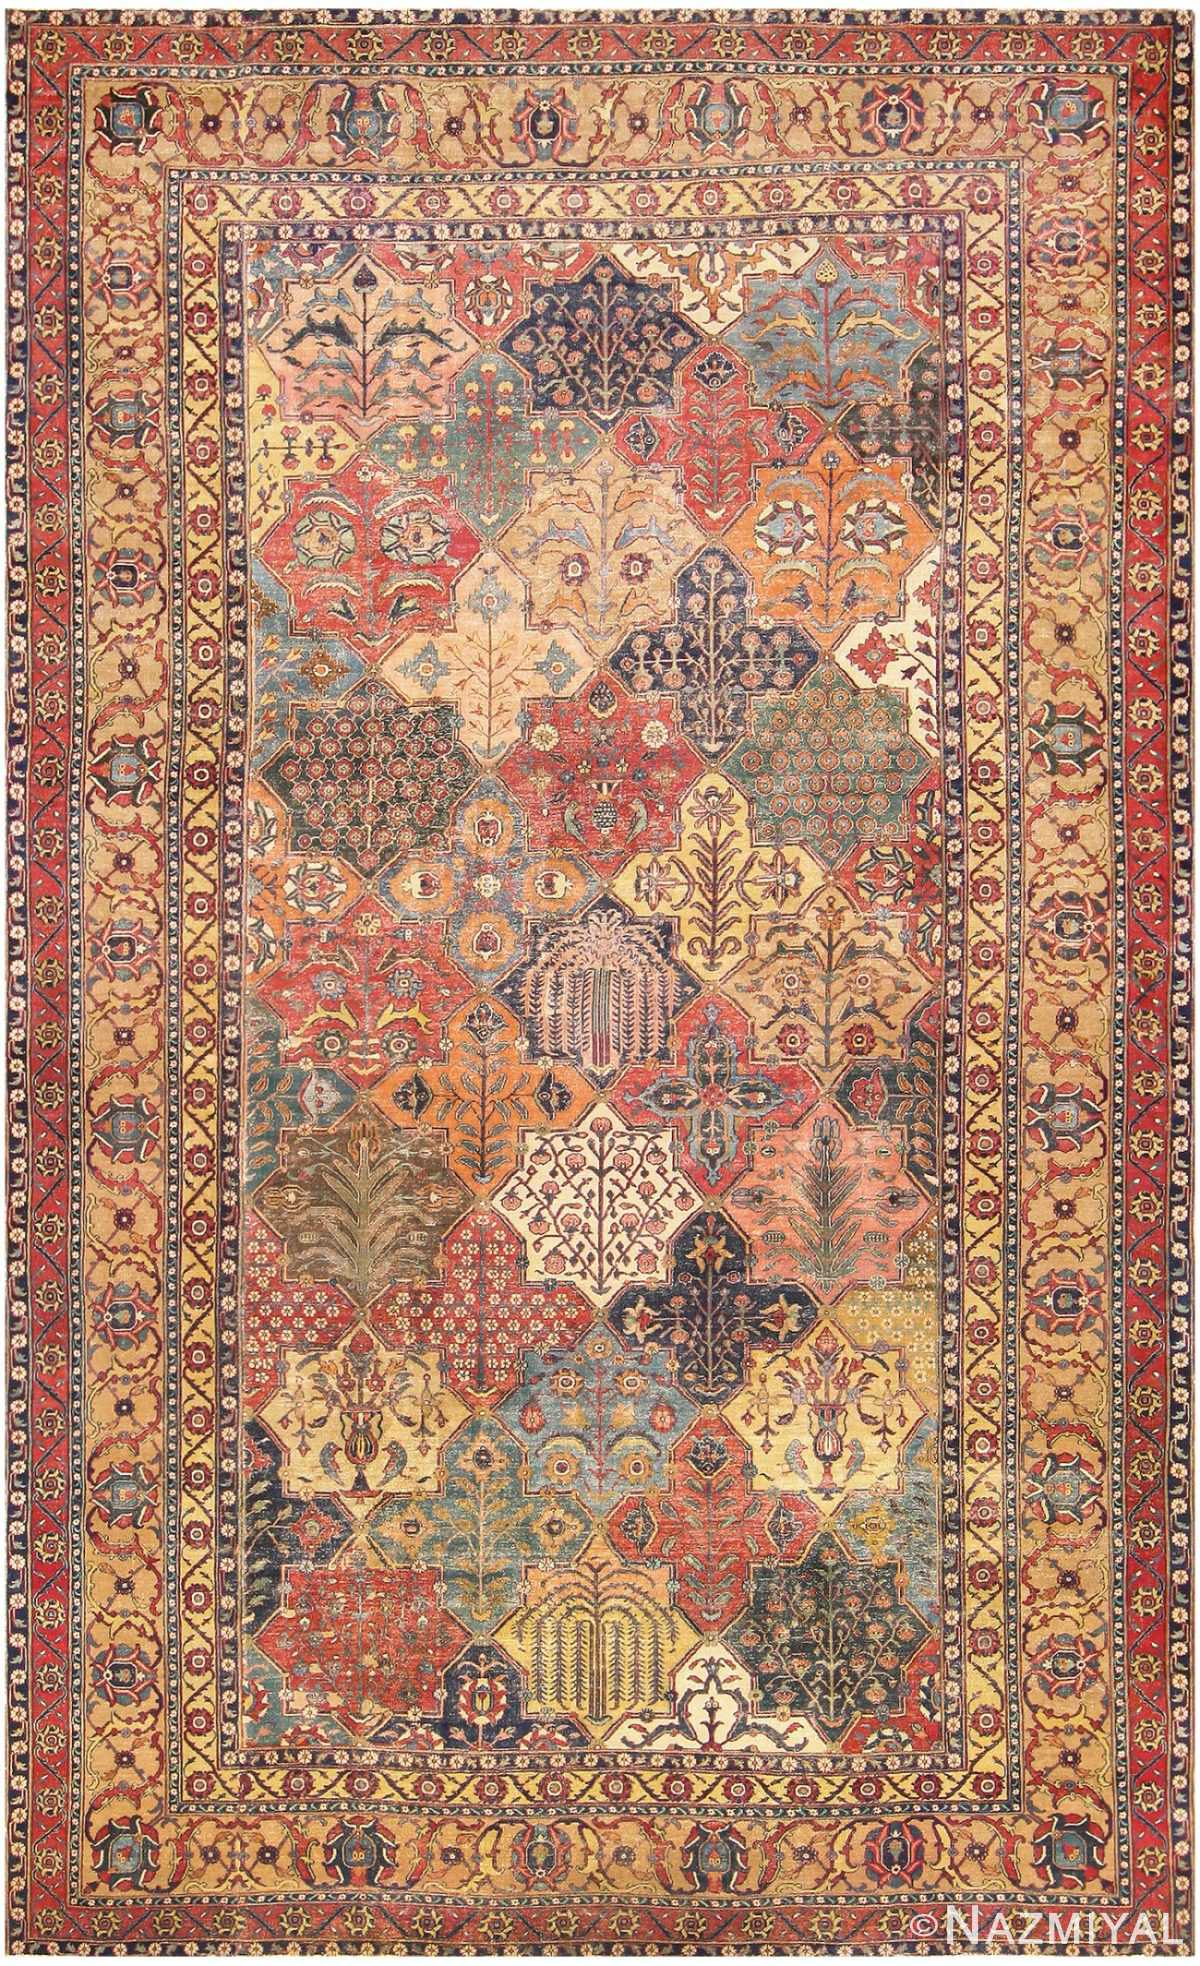 17th Century Persian Khorassan Carpet 47074 by nazmiyal